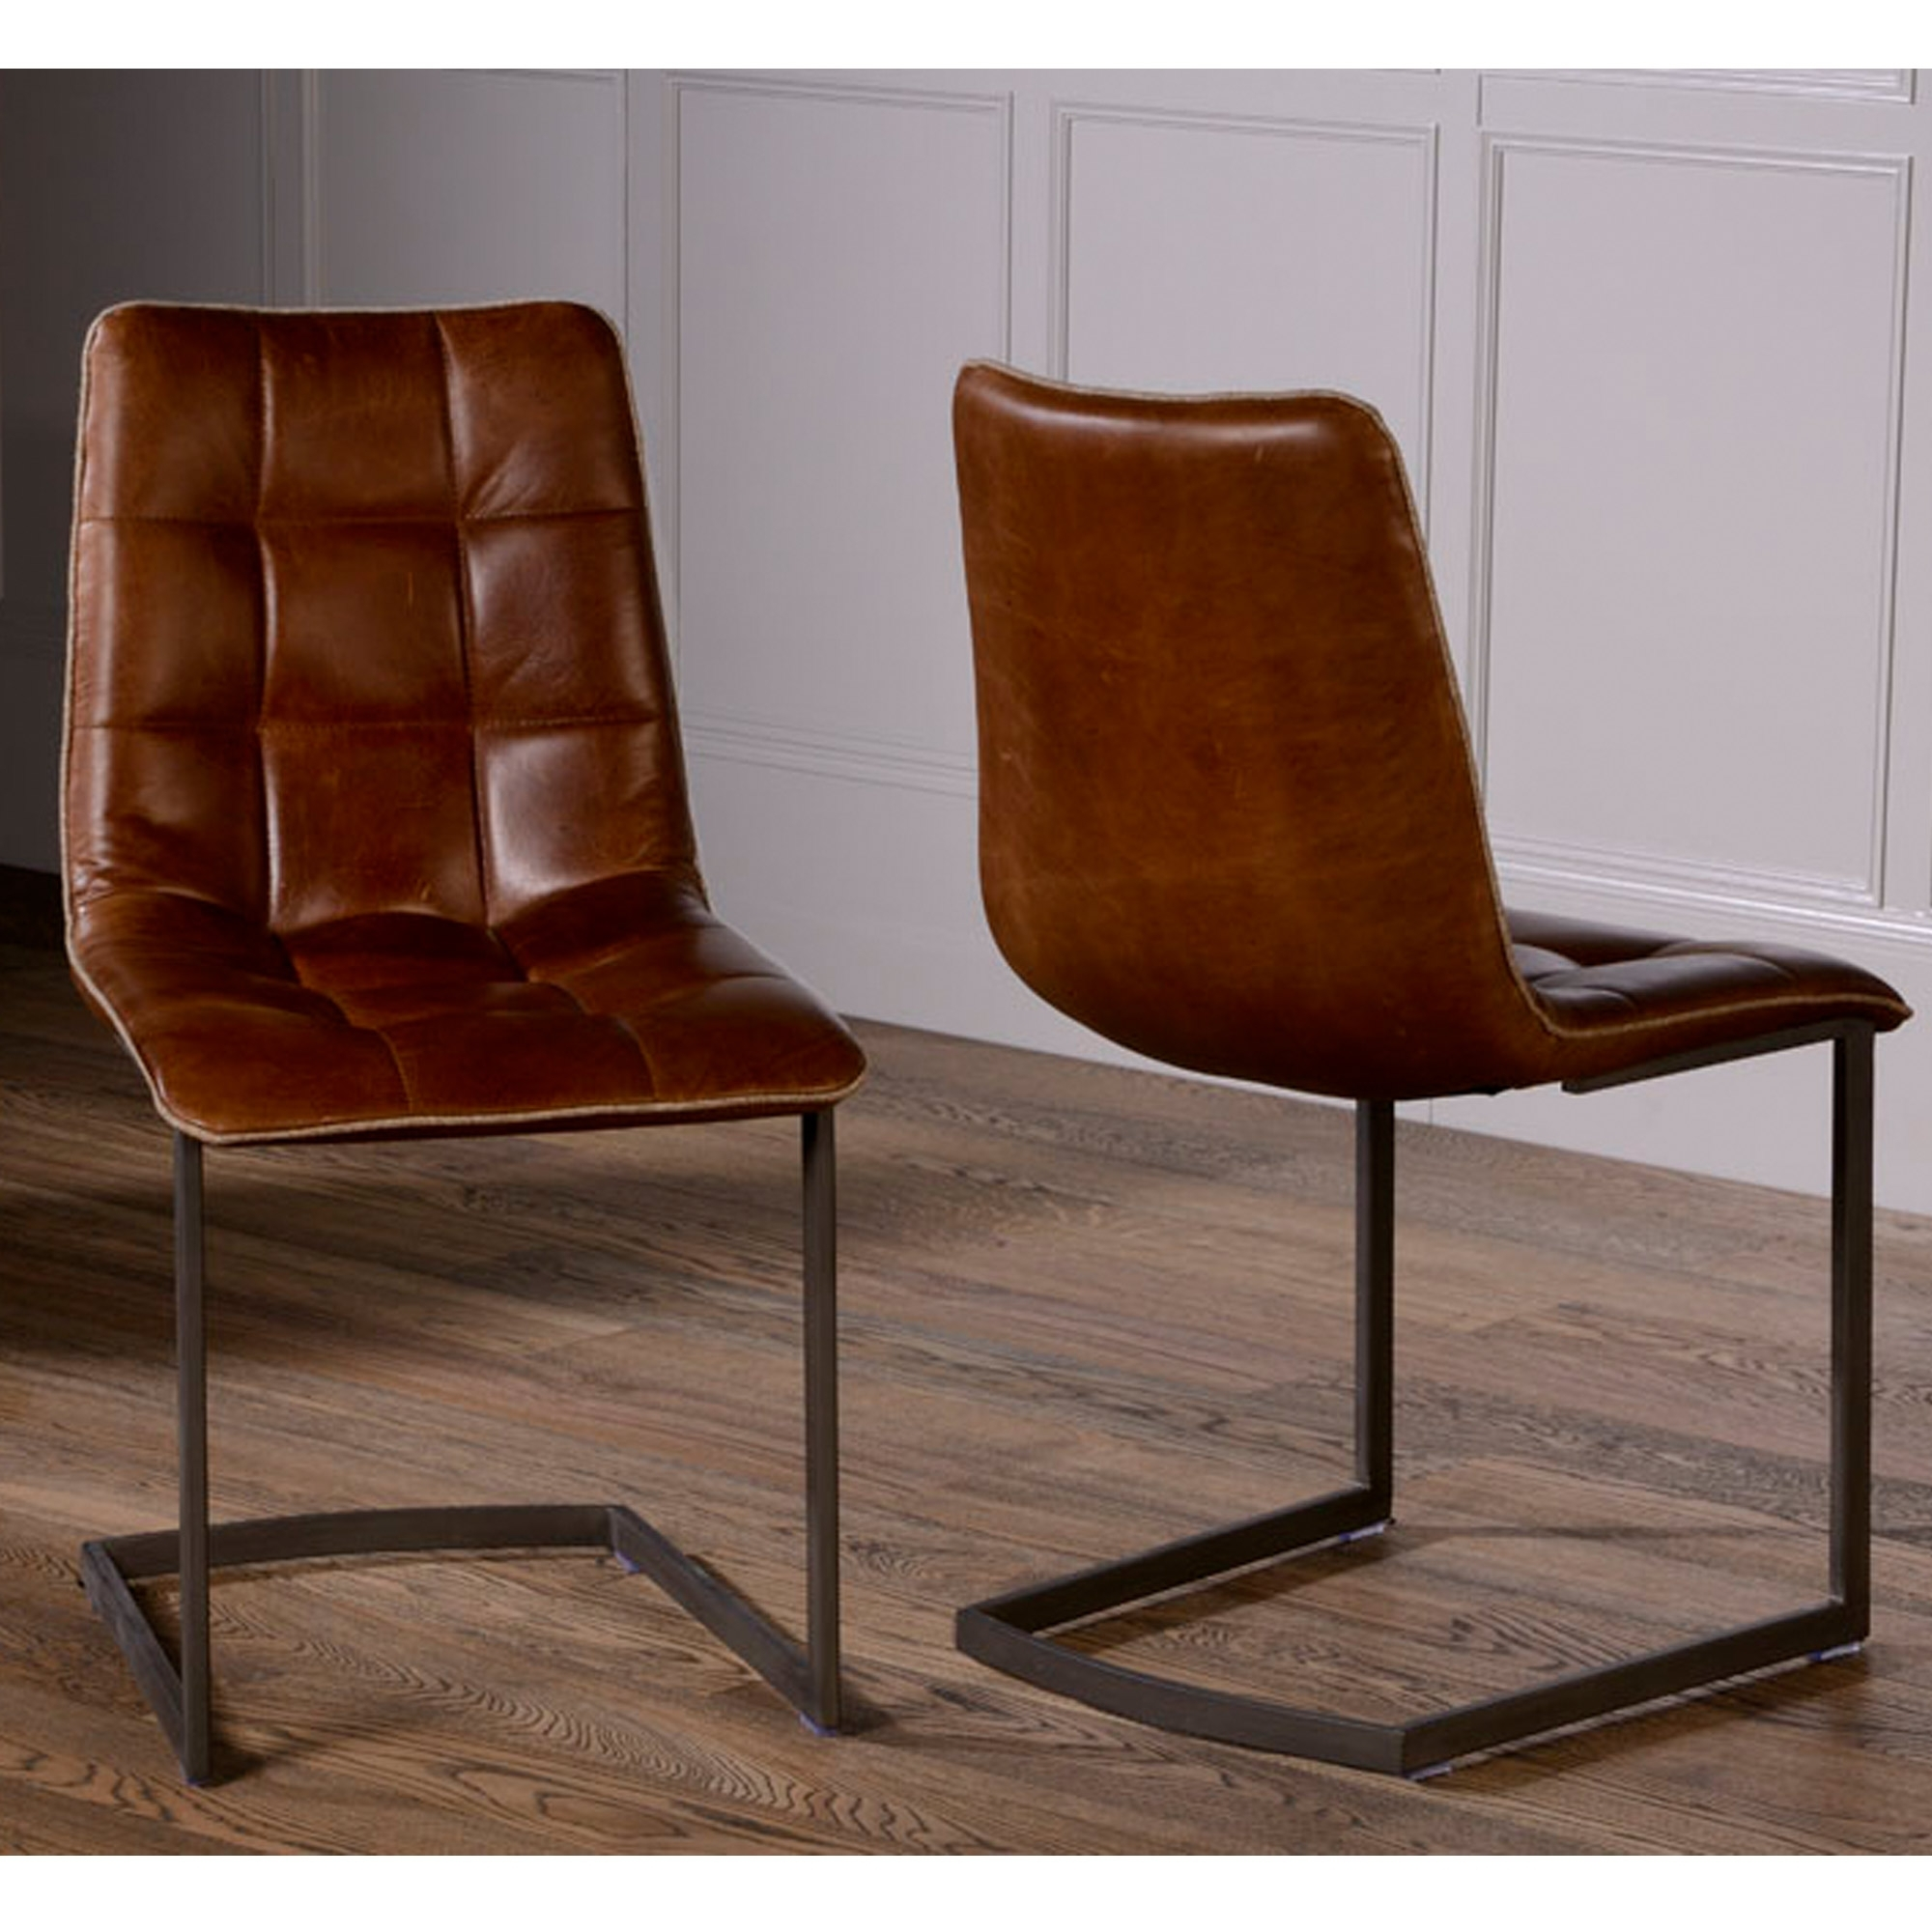 Leather Dining Chairs Regarding Most Current Related Keywords Suggestions For Leather Dining Chairs (View 20 of 25)